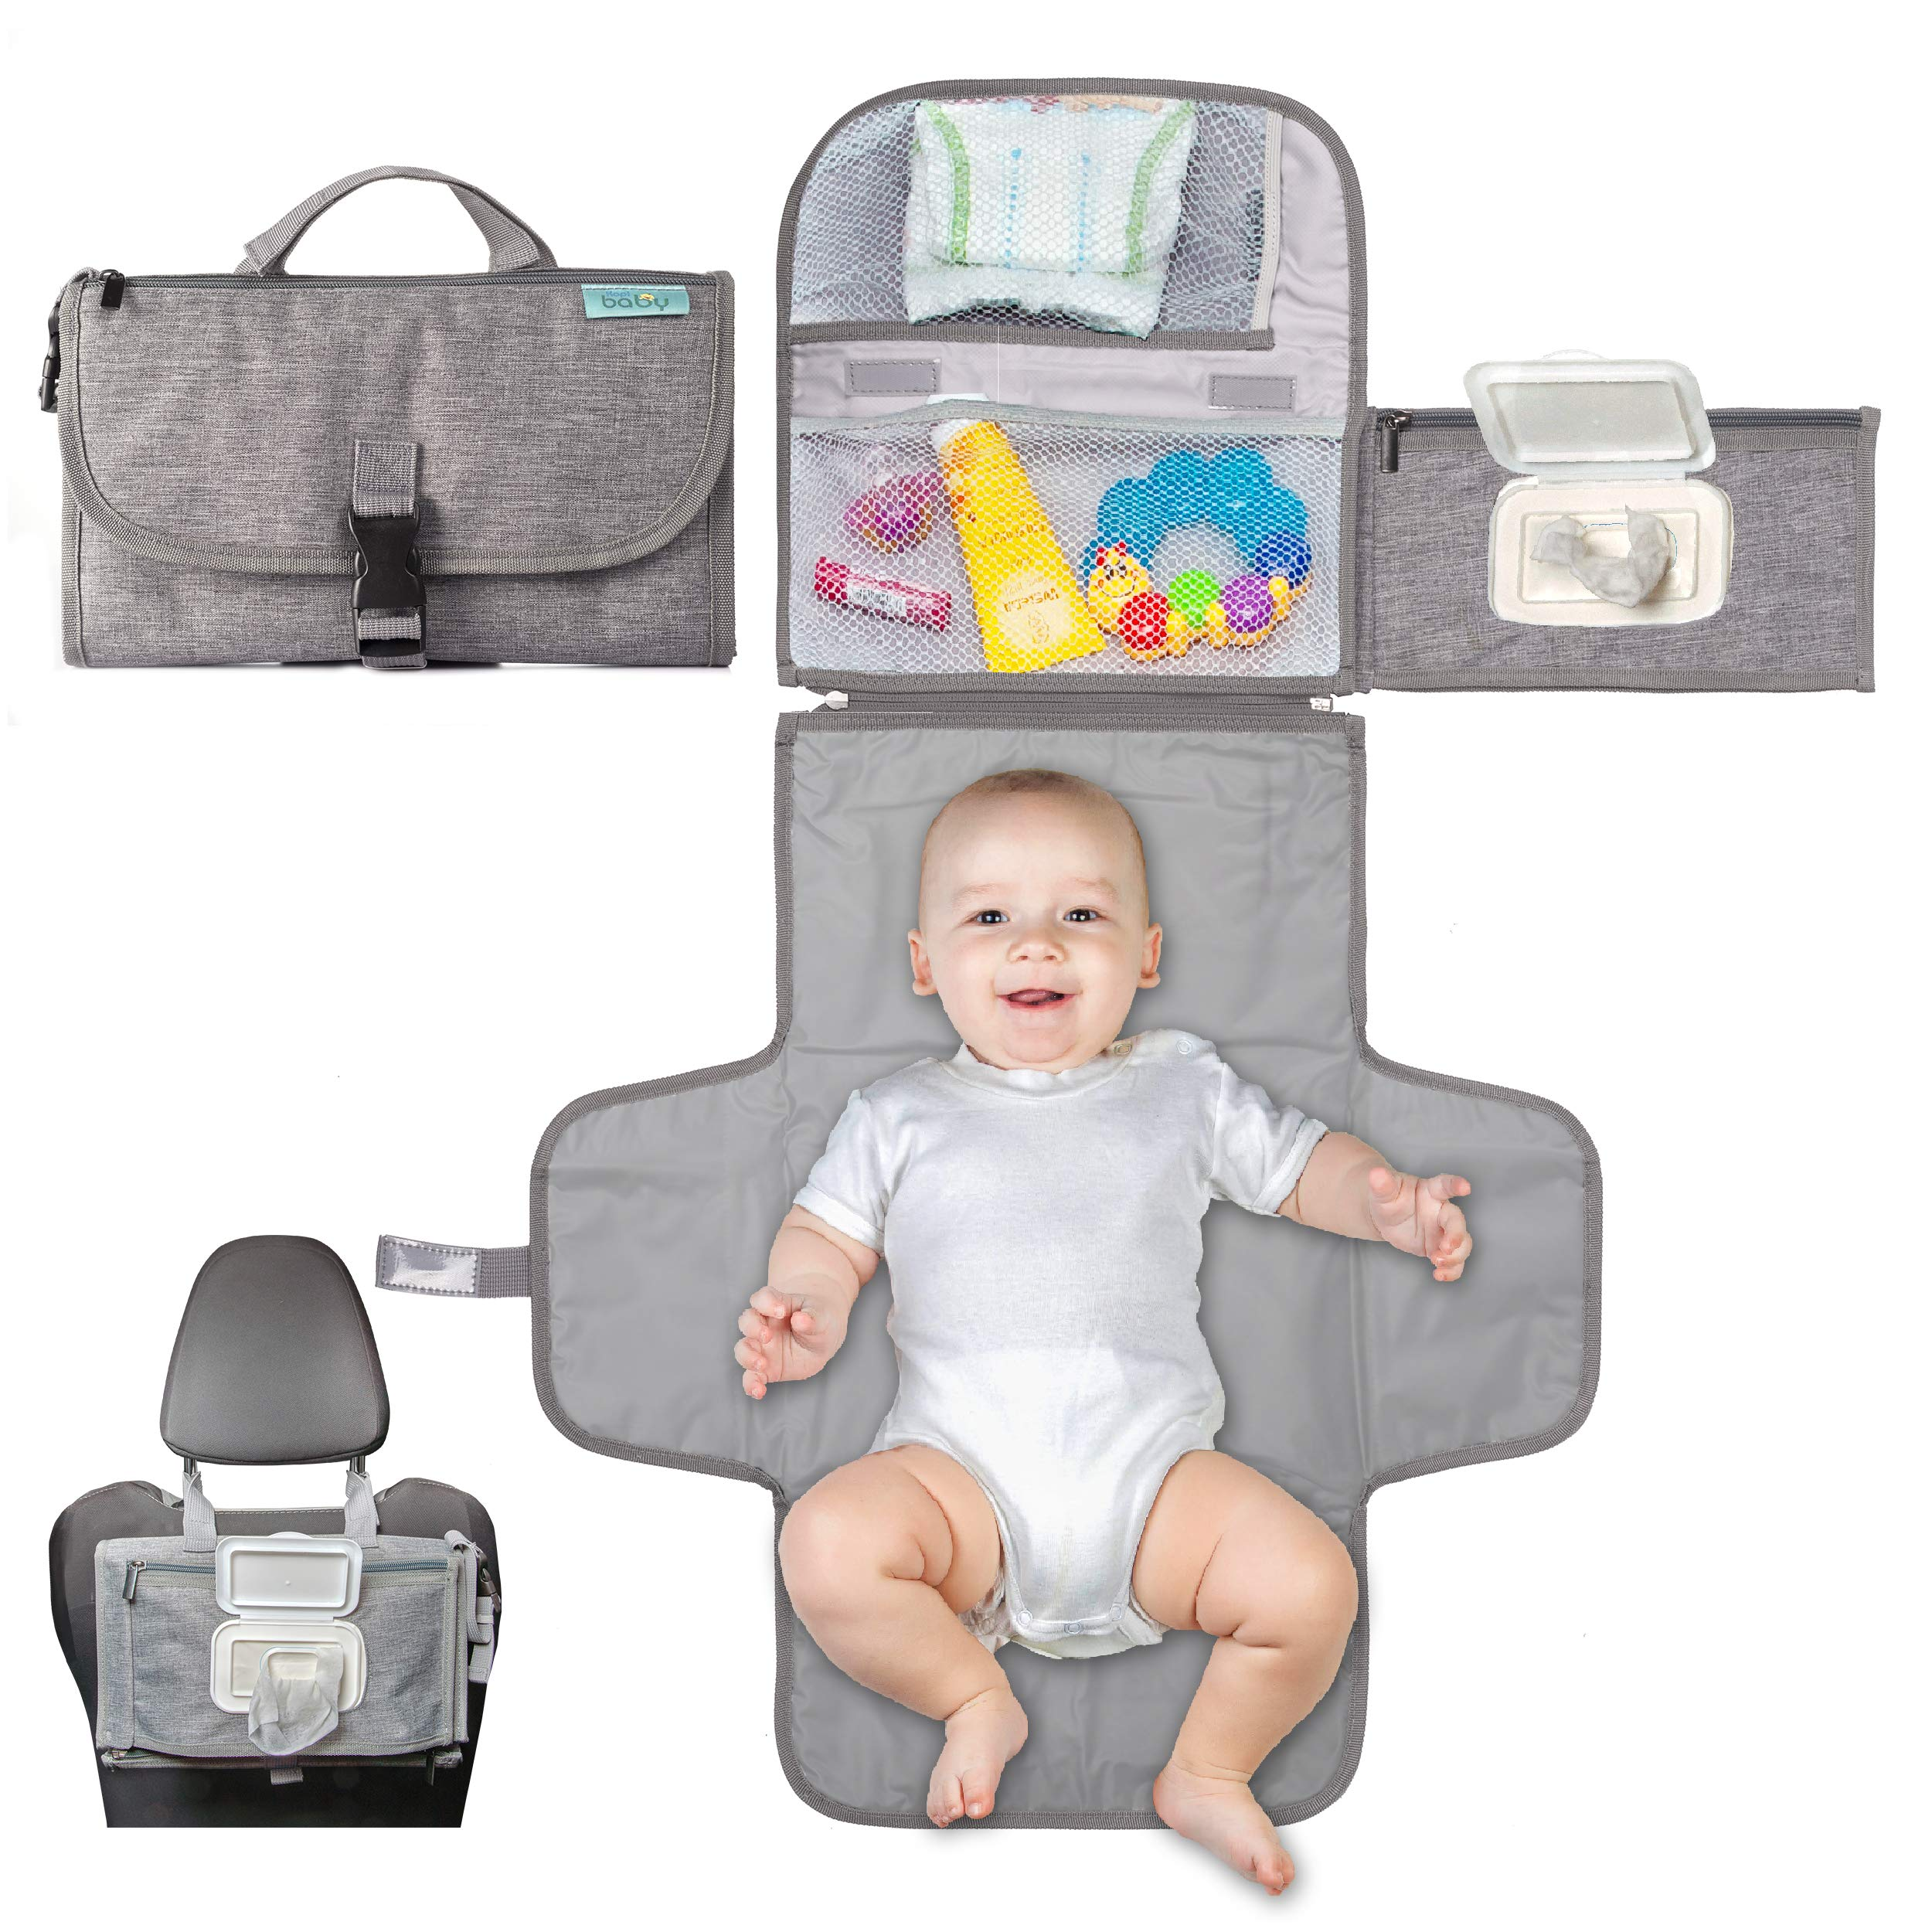 Portable diaper Changing Pad, Portable changing pad for newborn boy & girl- Baby Changing Pad with smart wipes pocket - waterproof Travel changing station kit - Perfect Baby Registry Gift by Kopi Baby by Kopi Baby